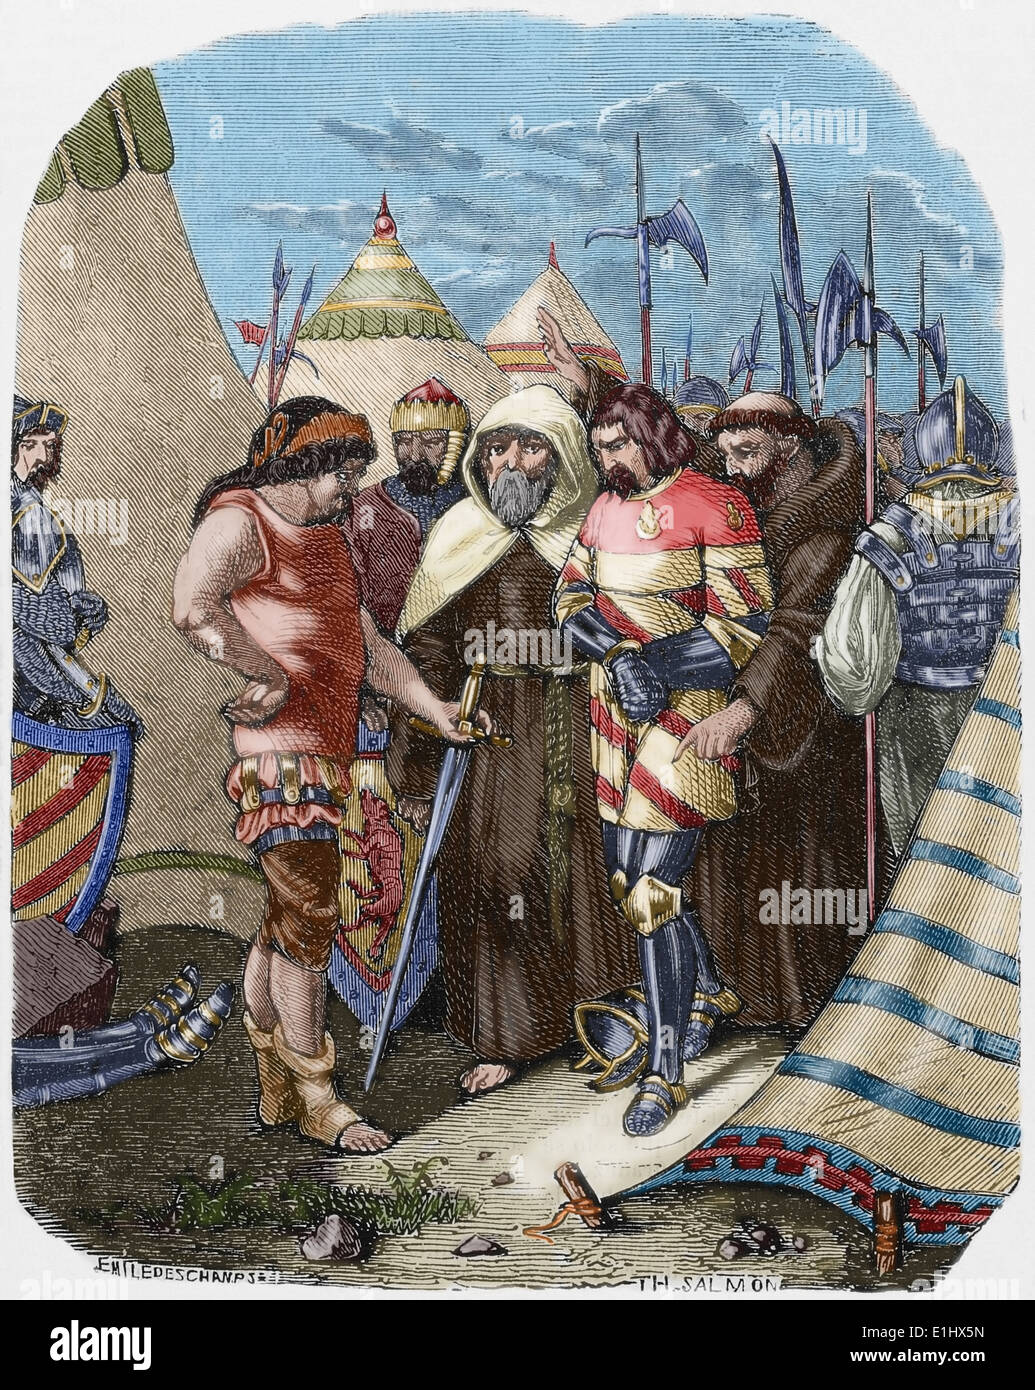 Louis II de la Tremoille (1460-1525). French General deciding to kill the accomplices of the Duke of Orleans. Colored engraving. - Stock Image